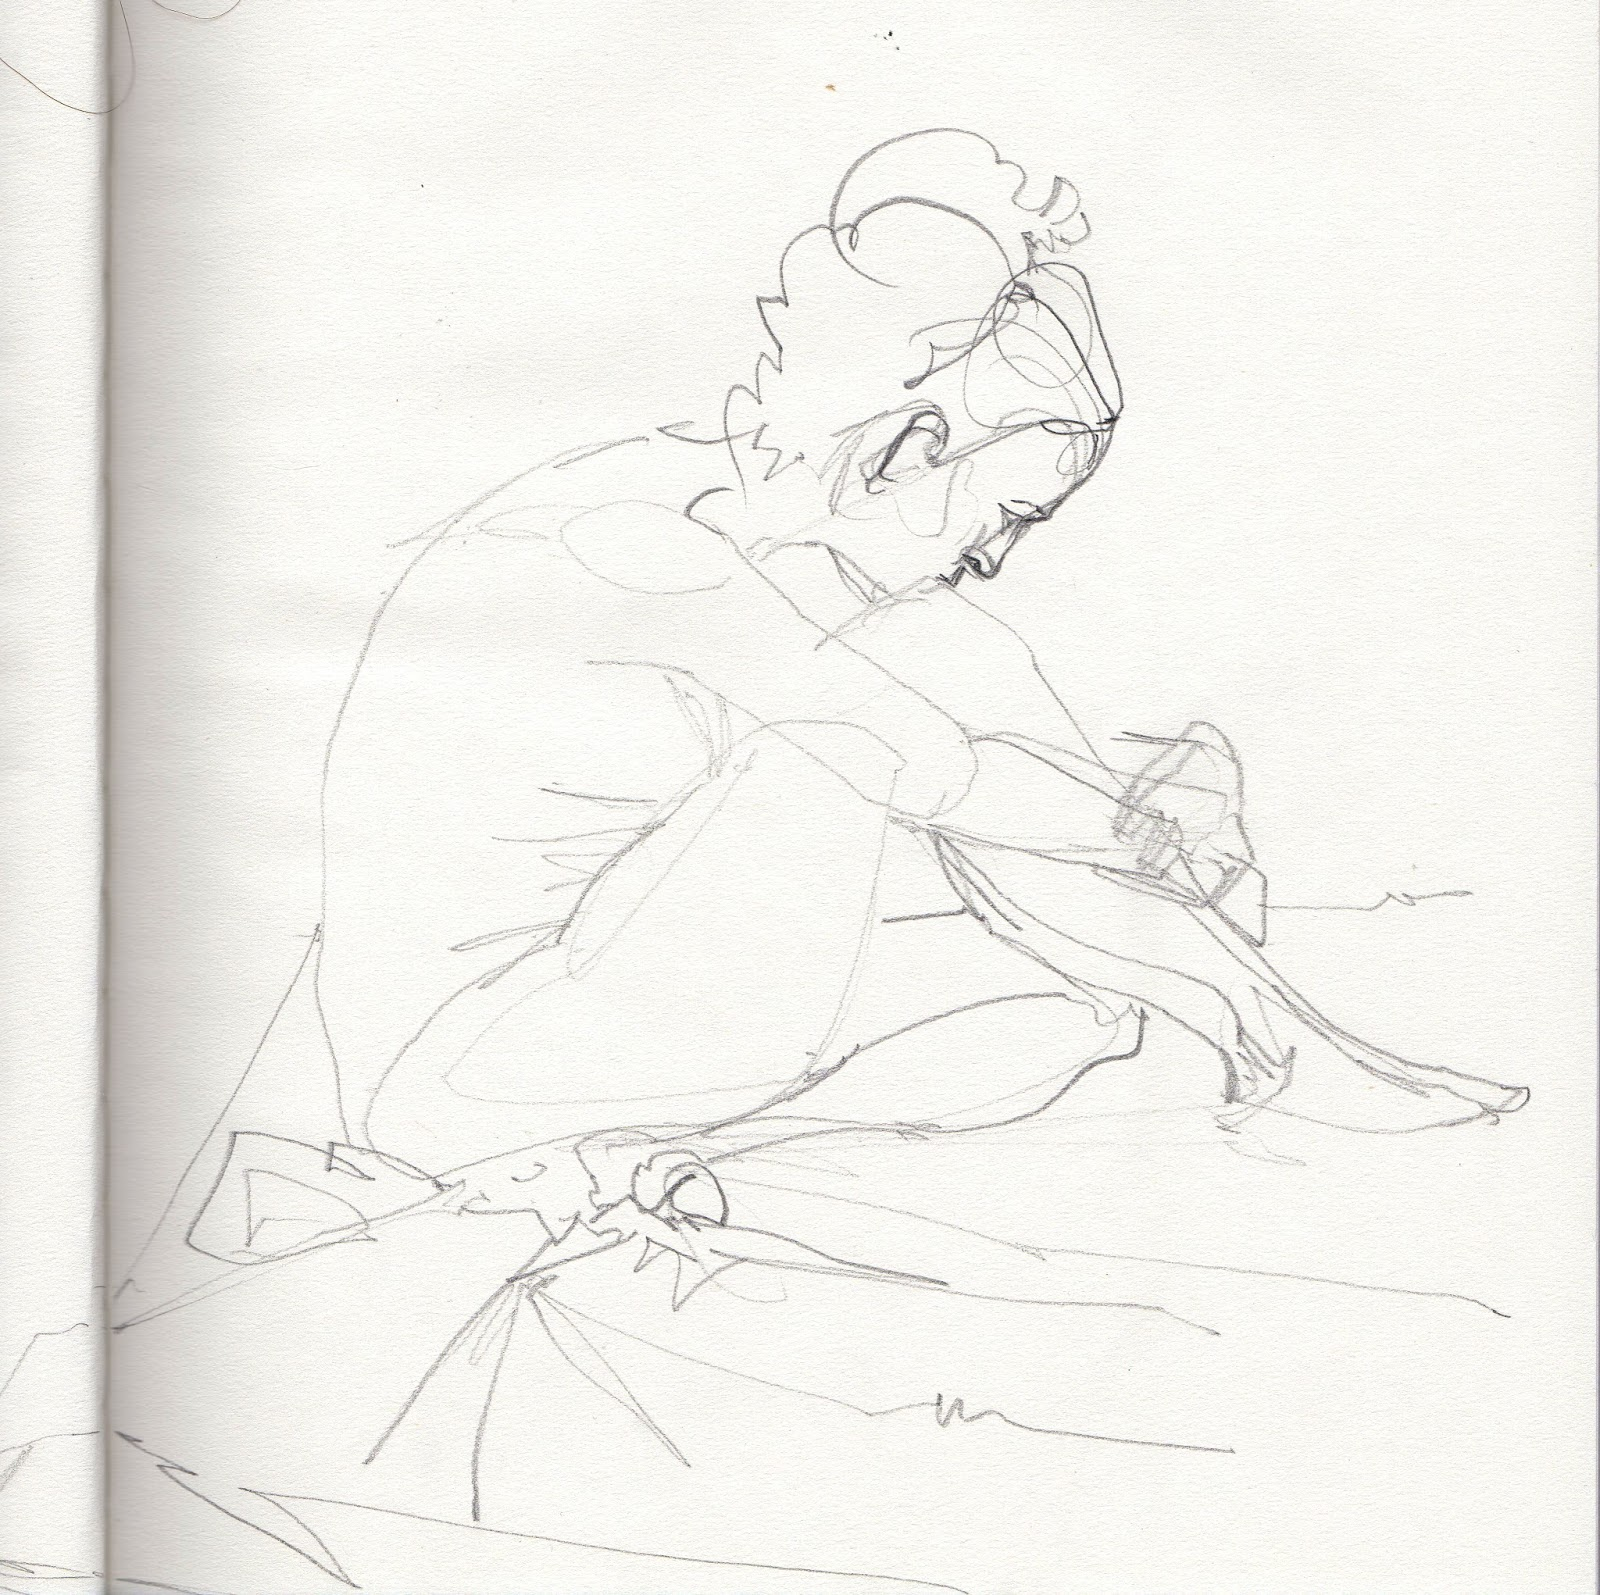 Tingrynade / croquis et recherches  - Page 15 Img15000086